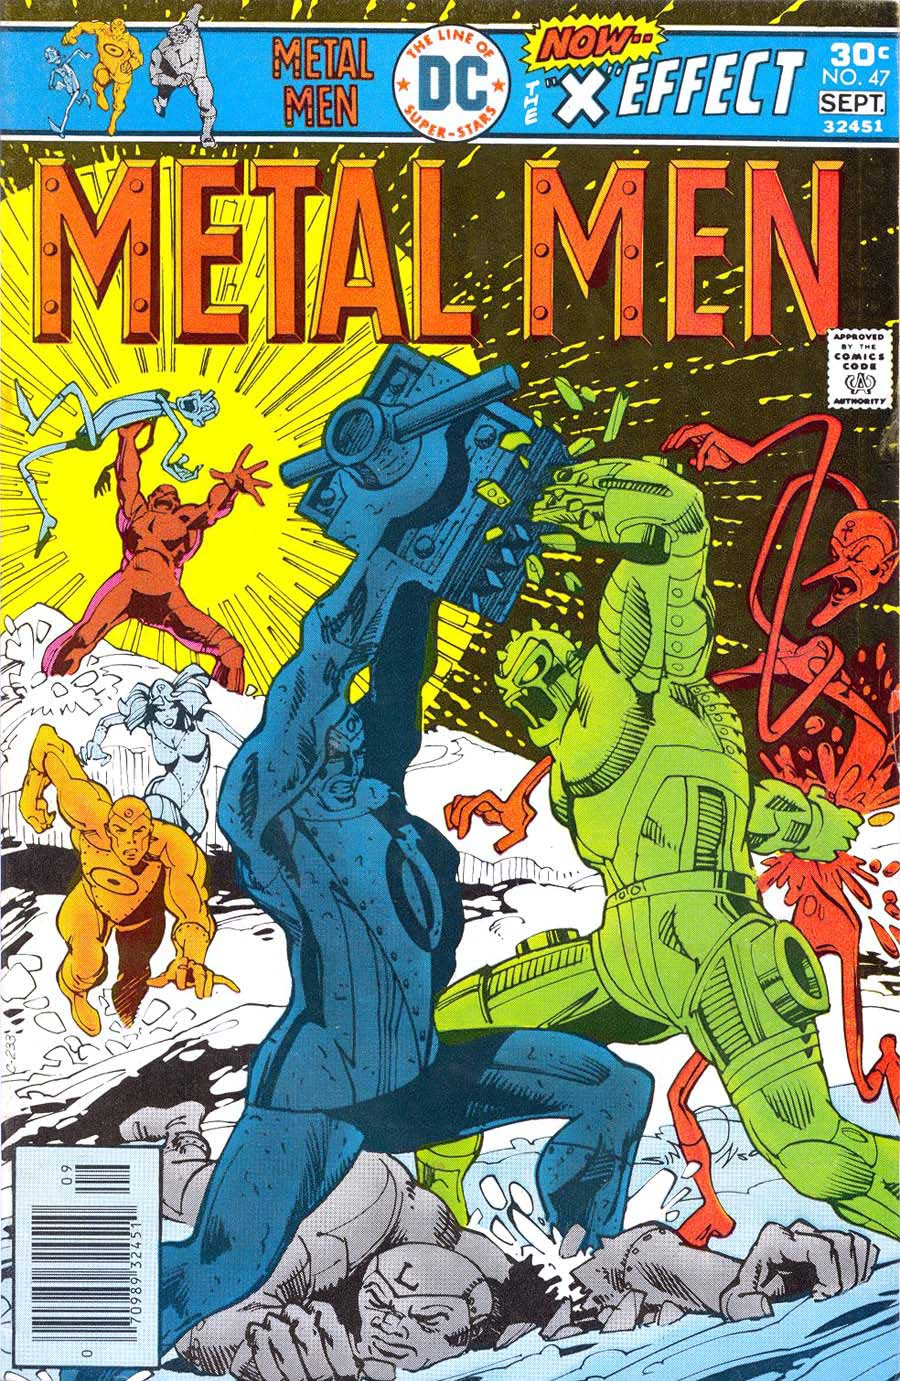 Metal Men v1 #47 dc 1970s bronze age comic book cover art by Walt Simonson